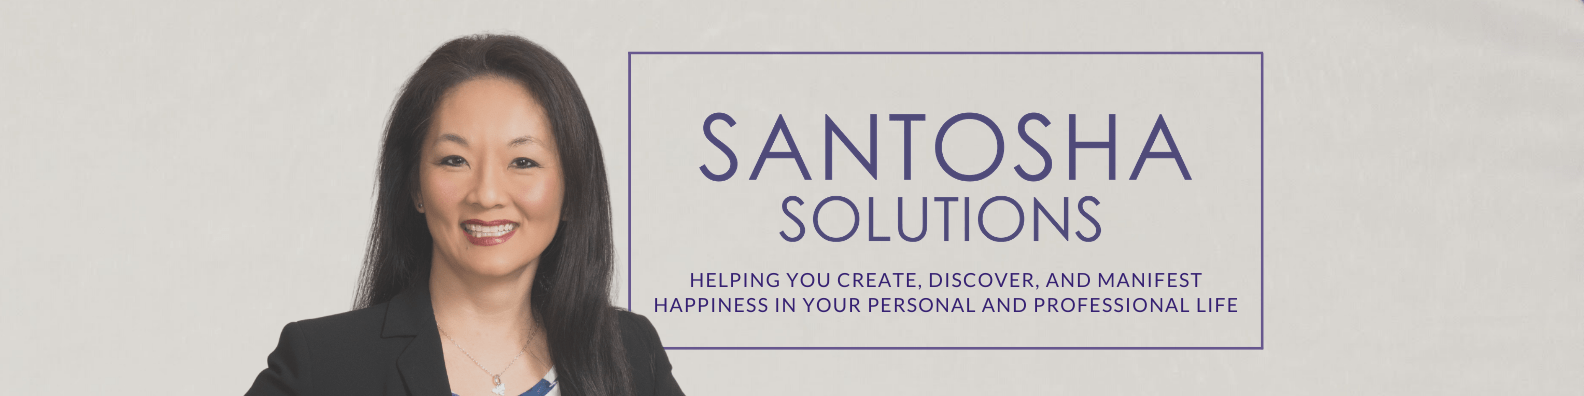 Santosha Solutions Website Banner